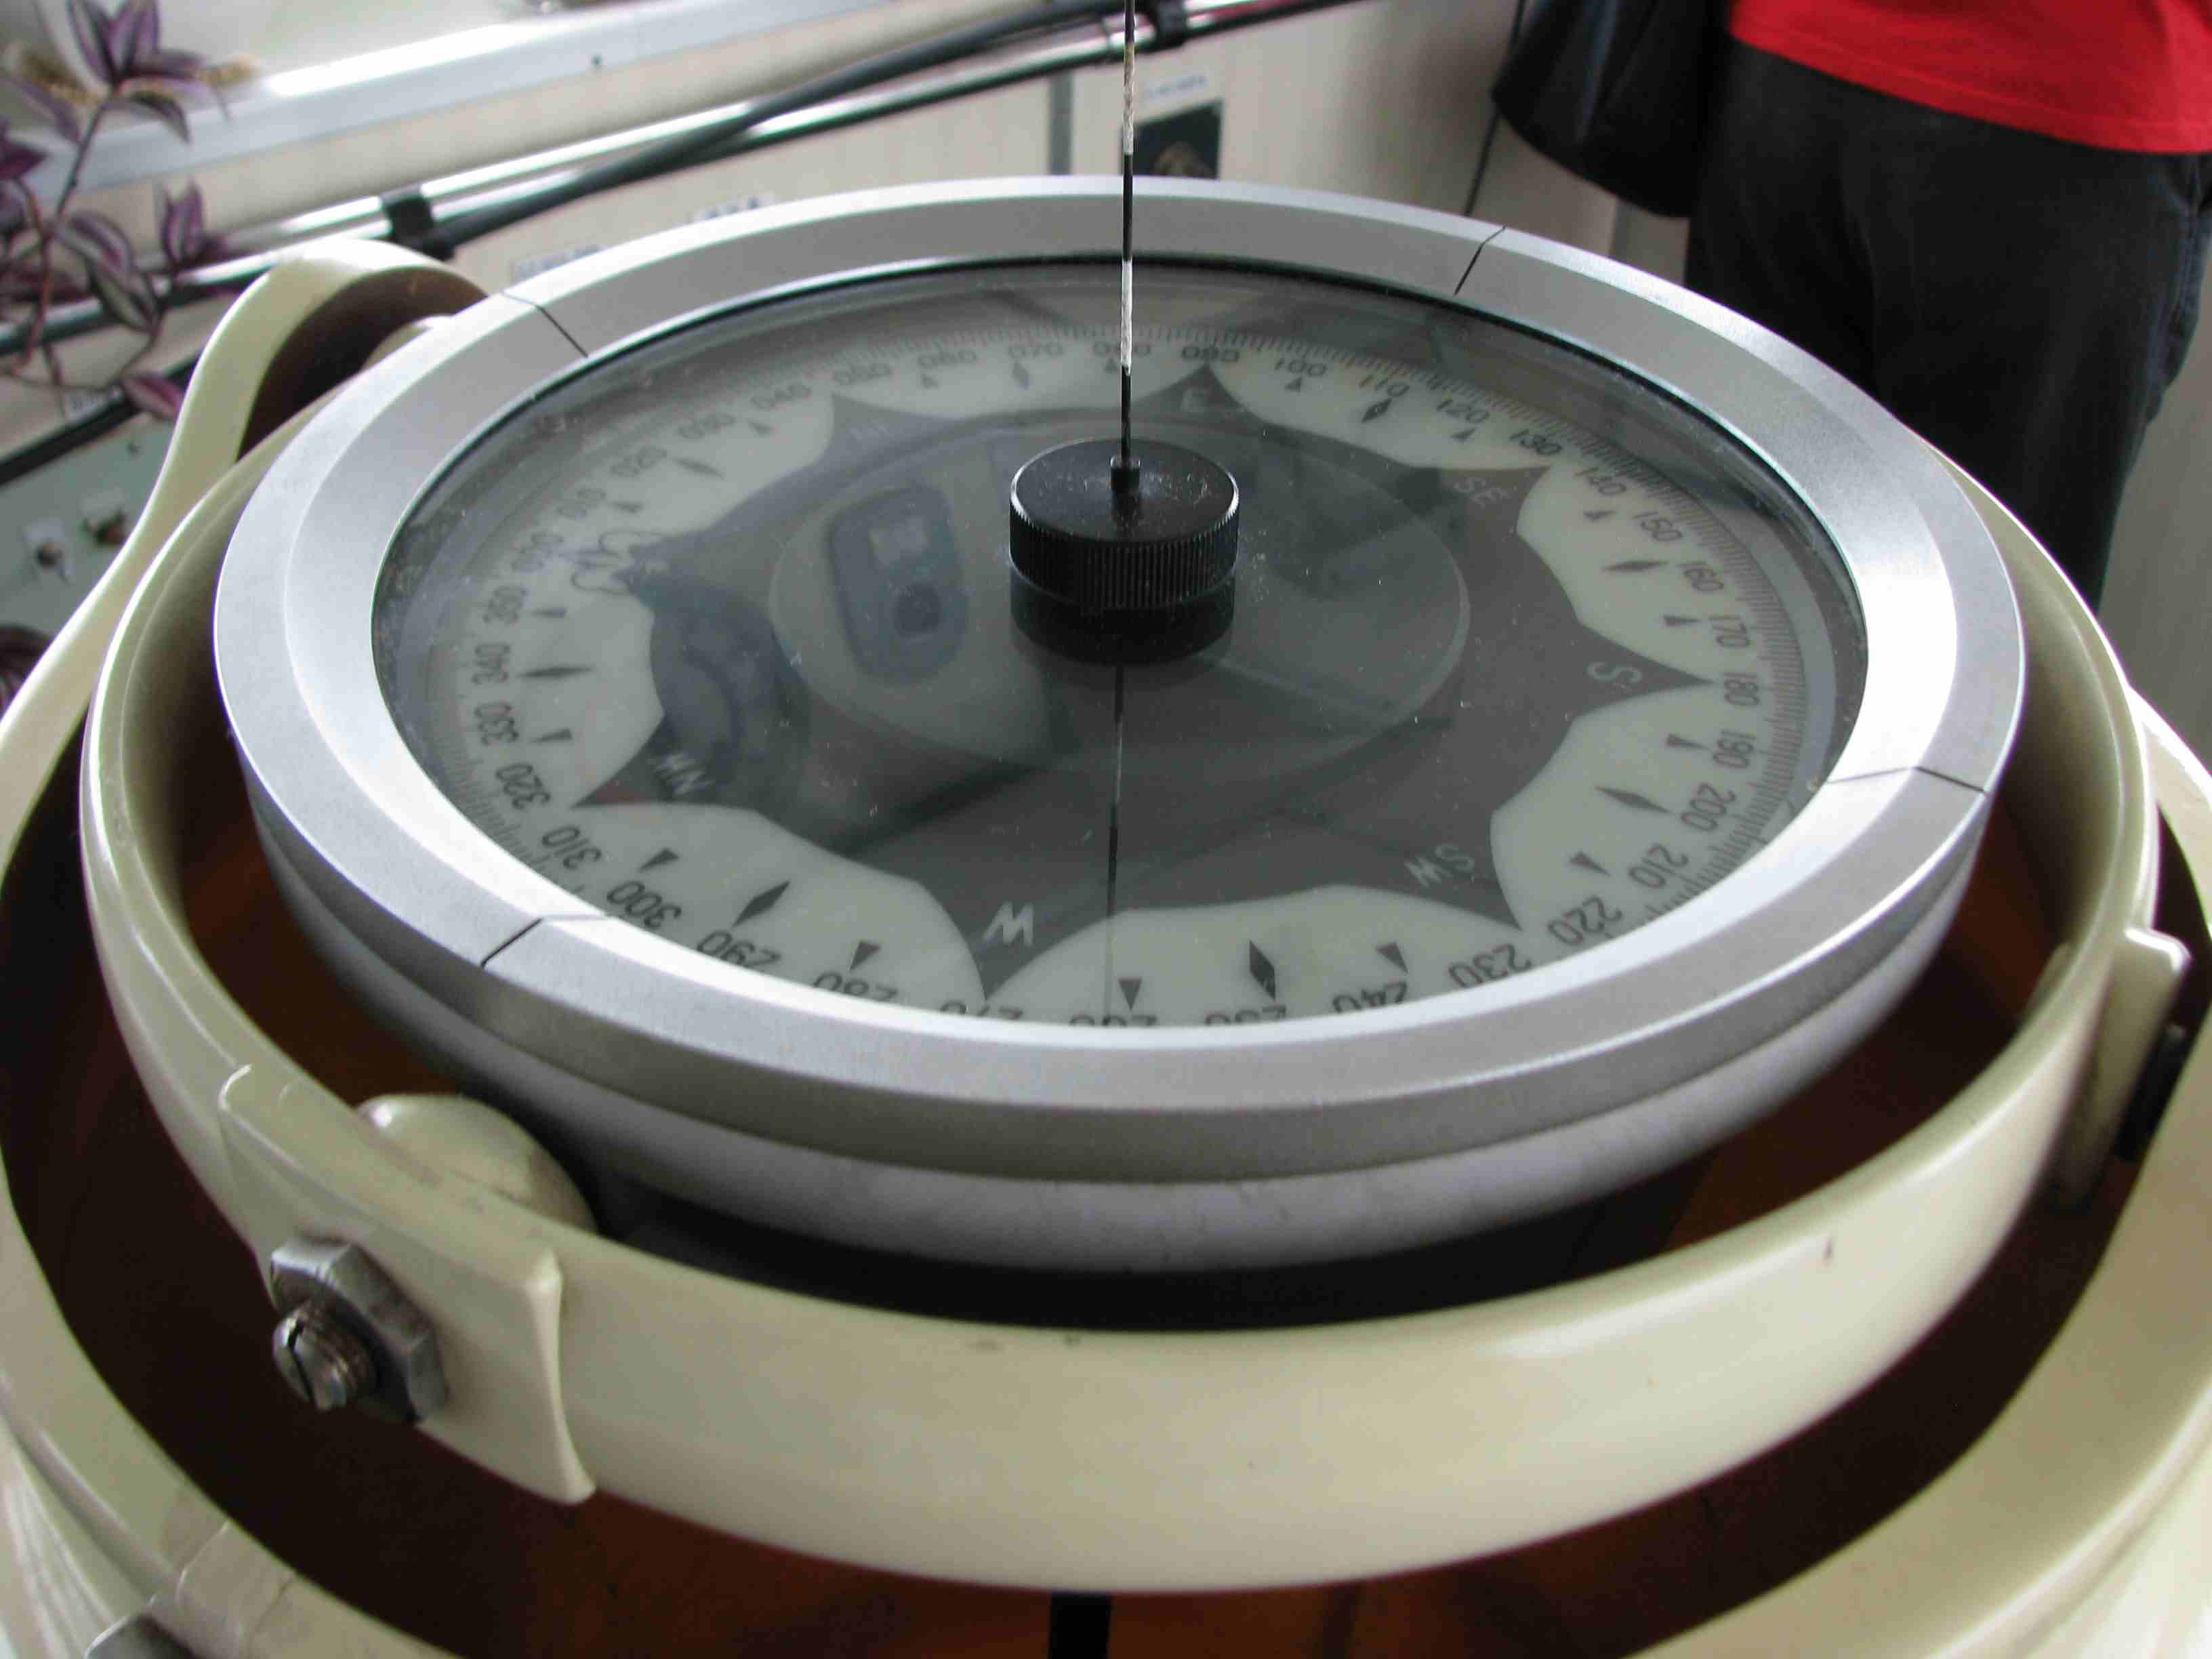 A nautical compass with rotating disk